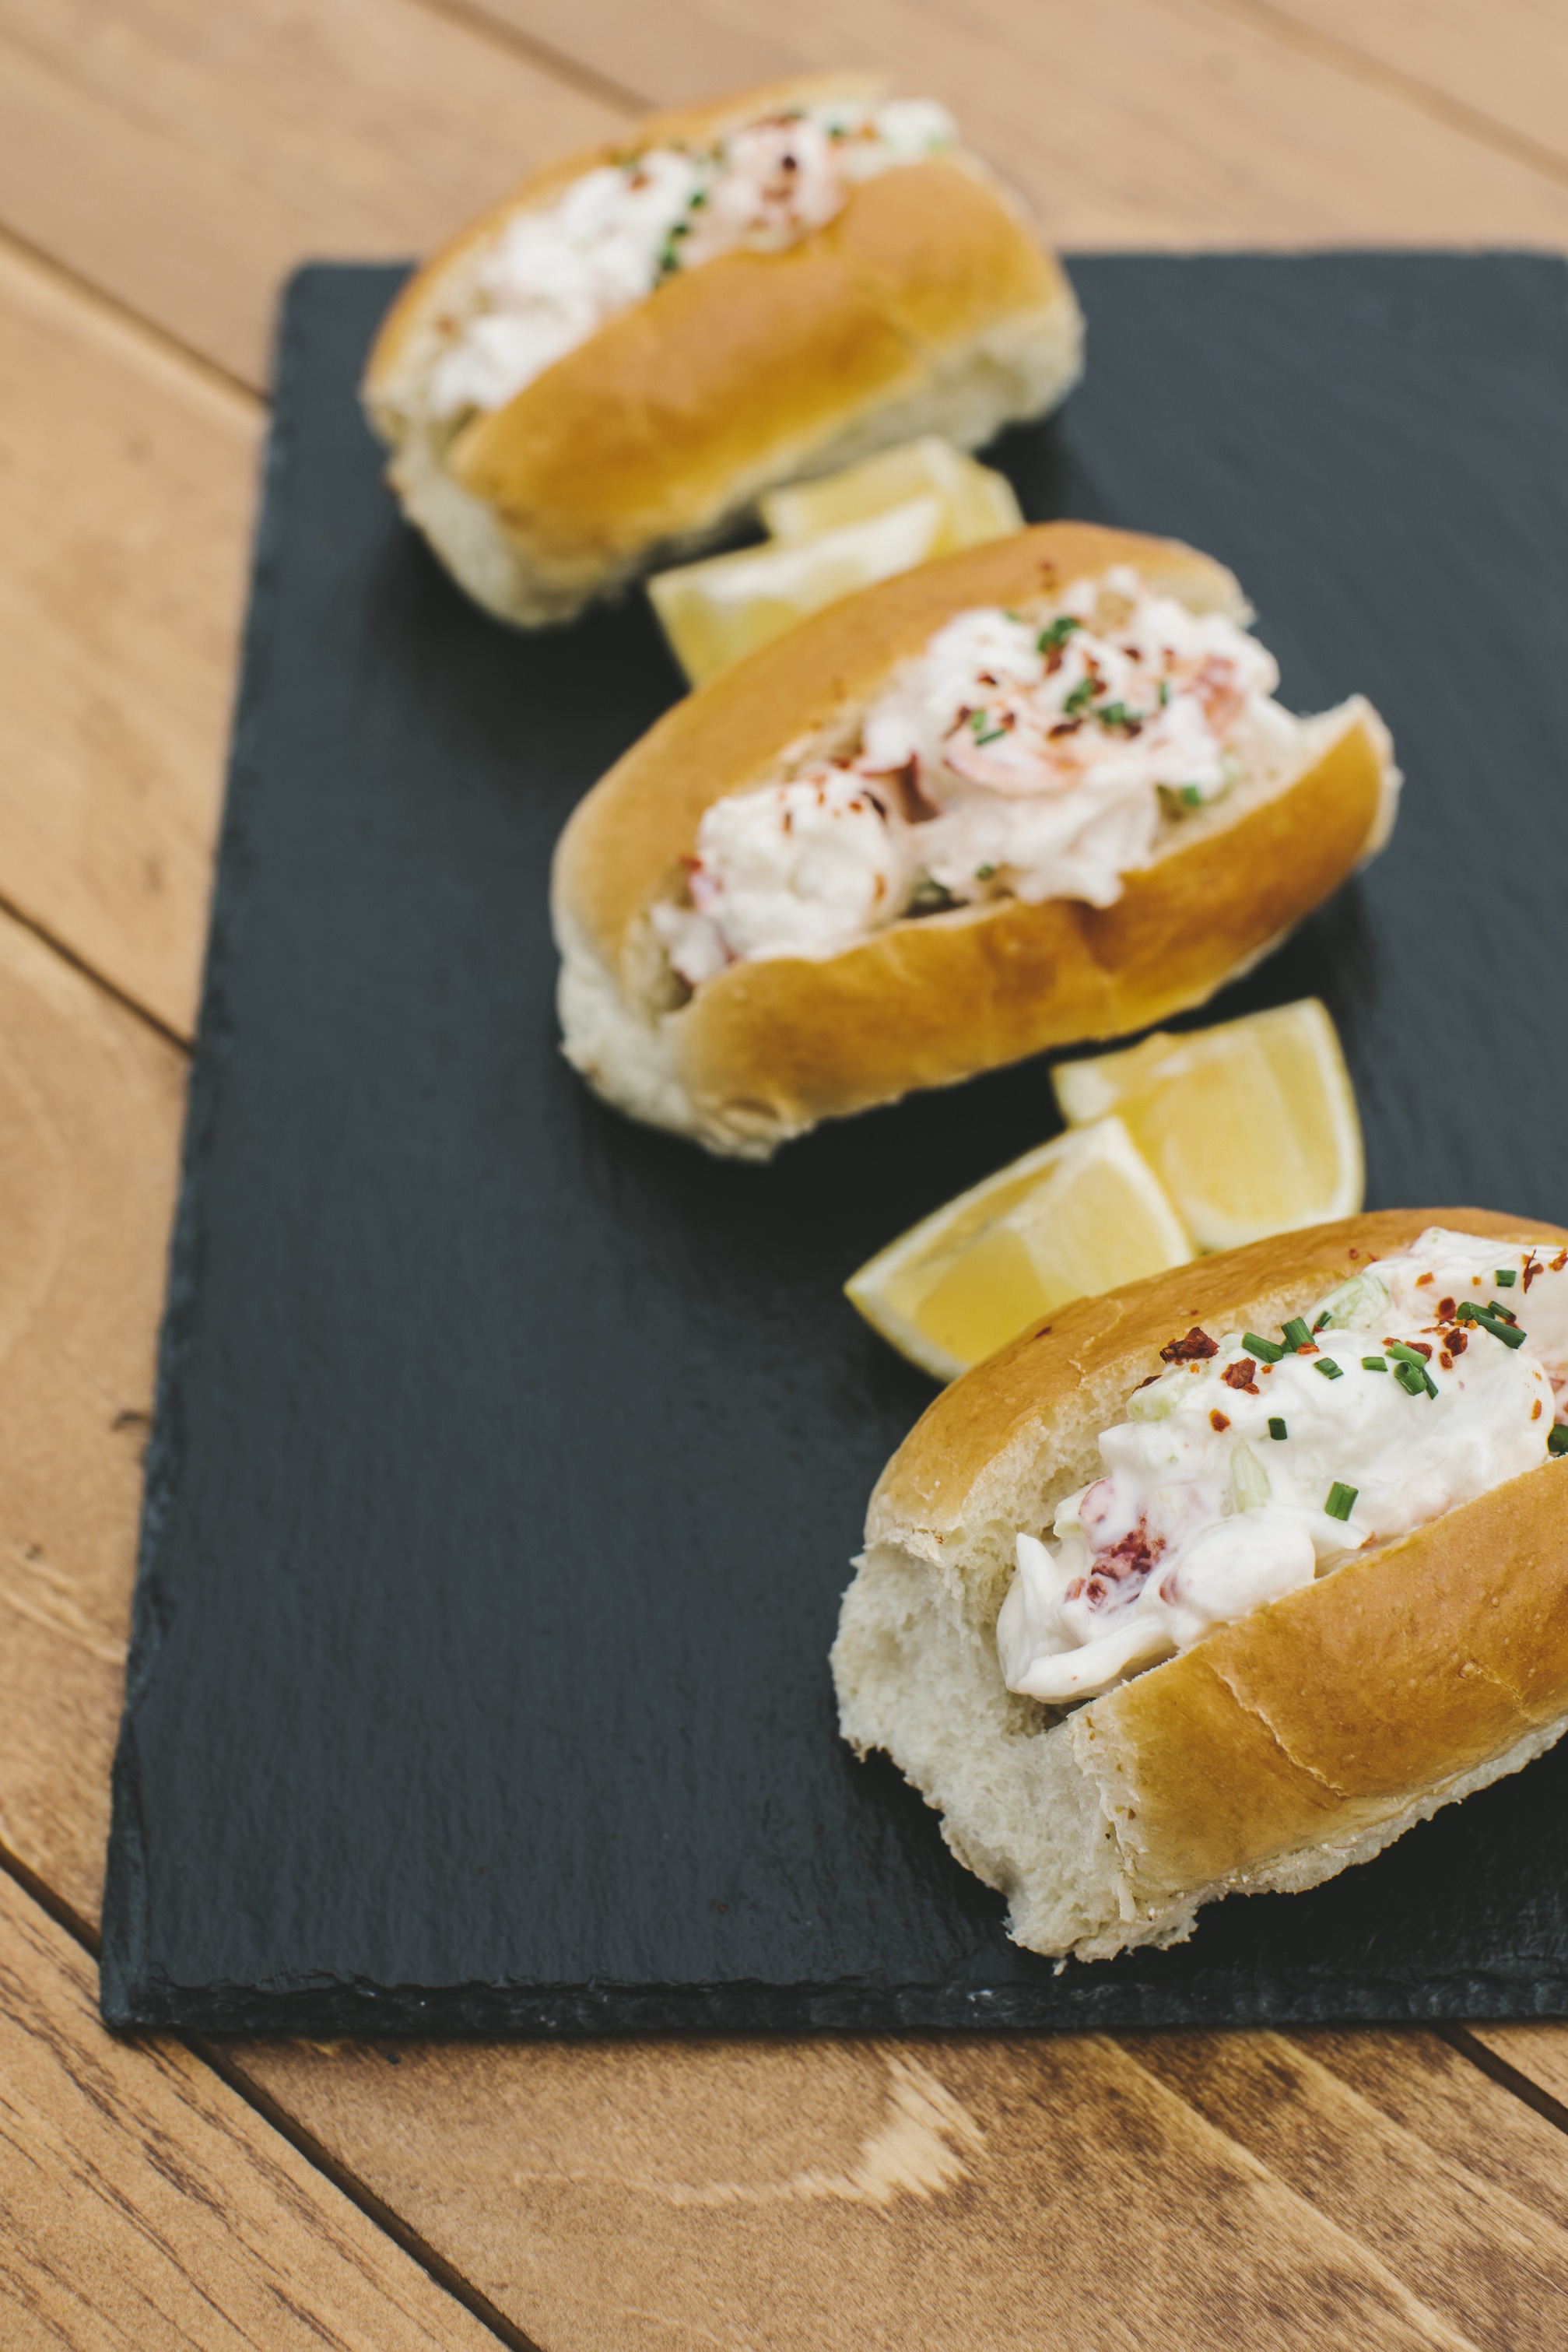 laura john wedding massachusetts lobster roll